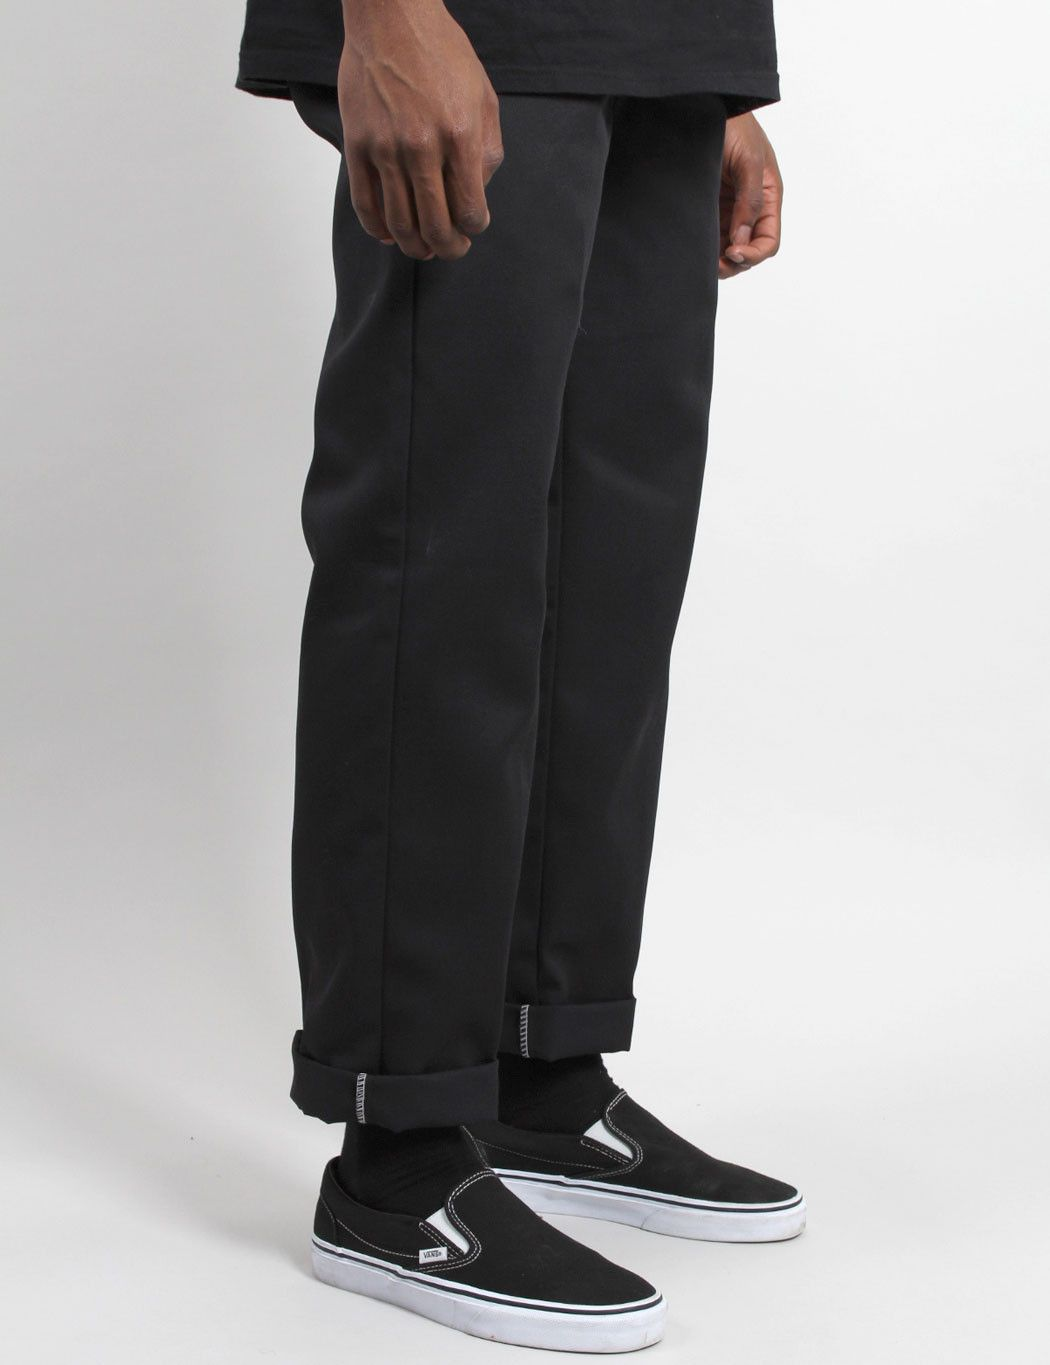 c24b20c7391d Dickies 873 Work Pant (Slim Straight) - Black in 2019